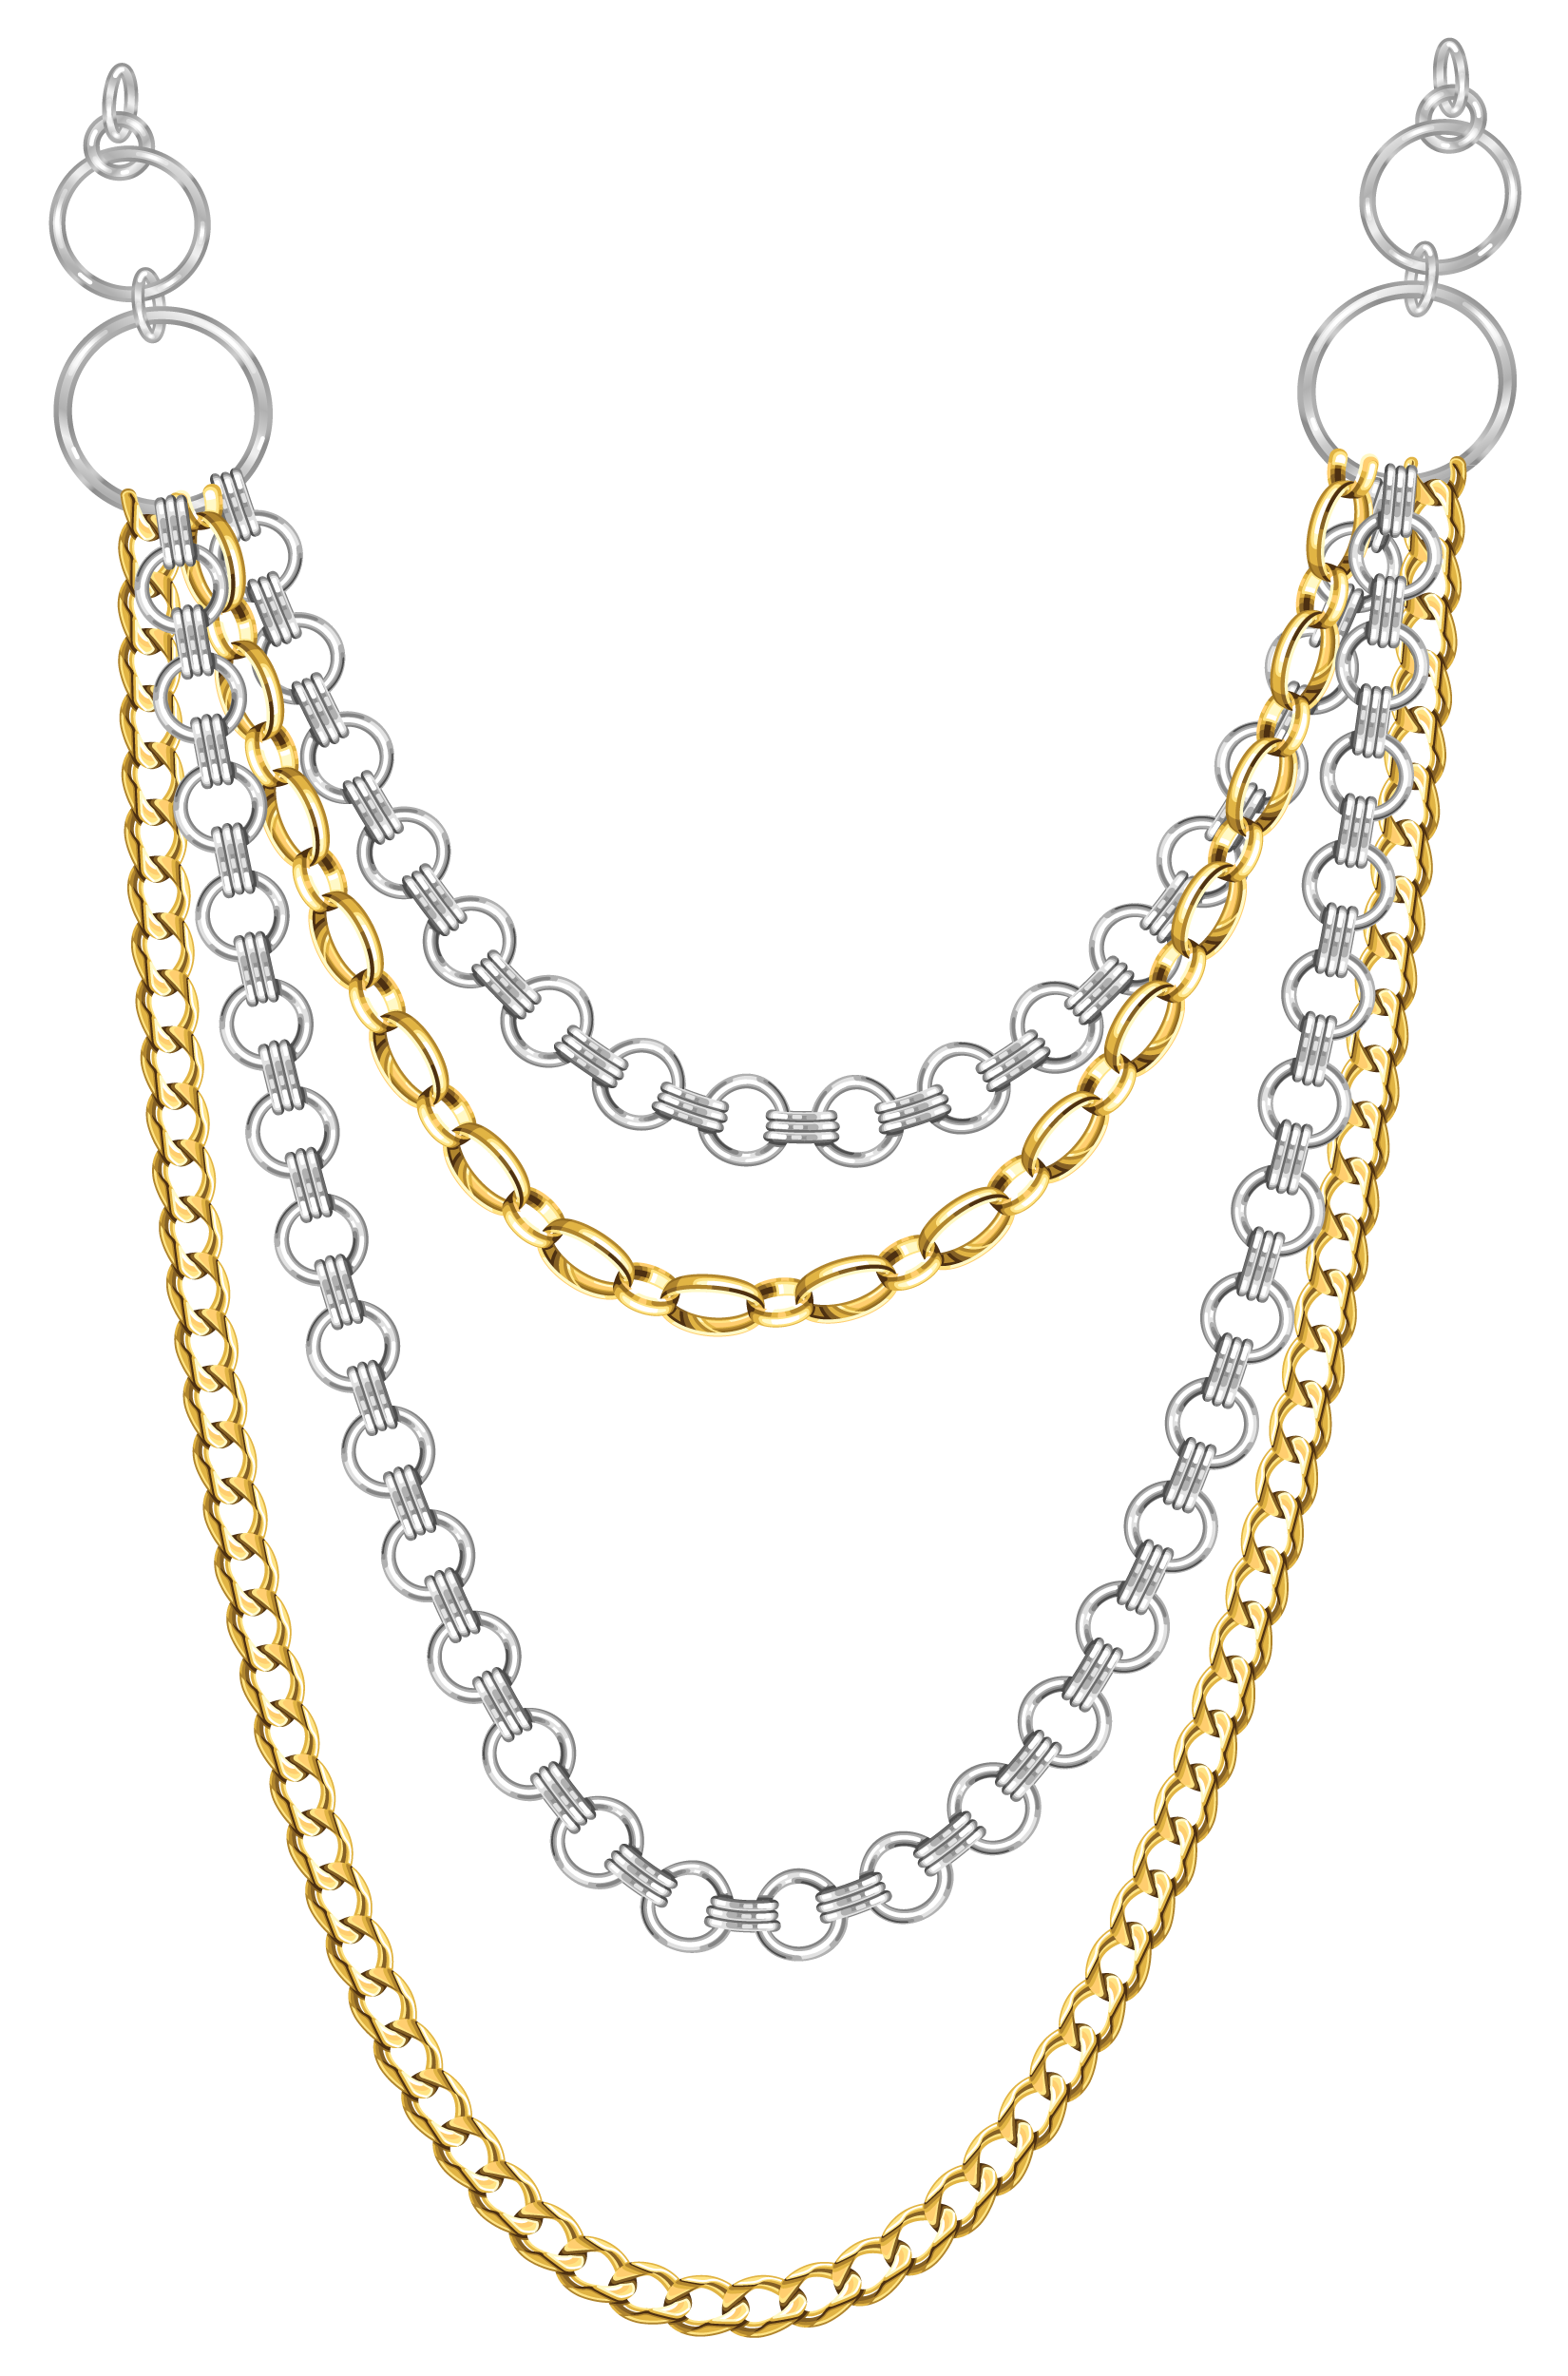 uploads necklace necklace PNG104 5